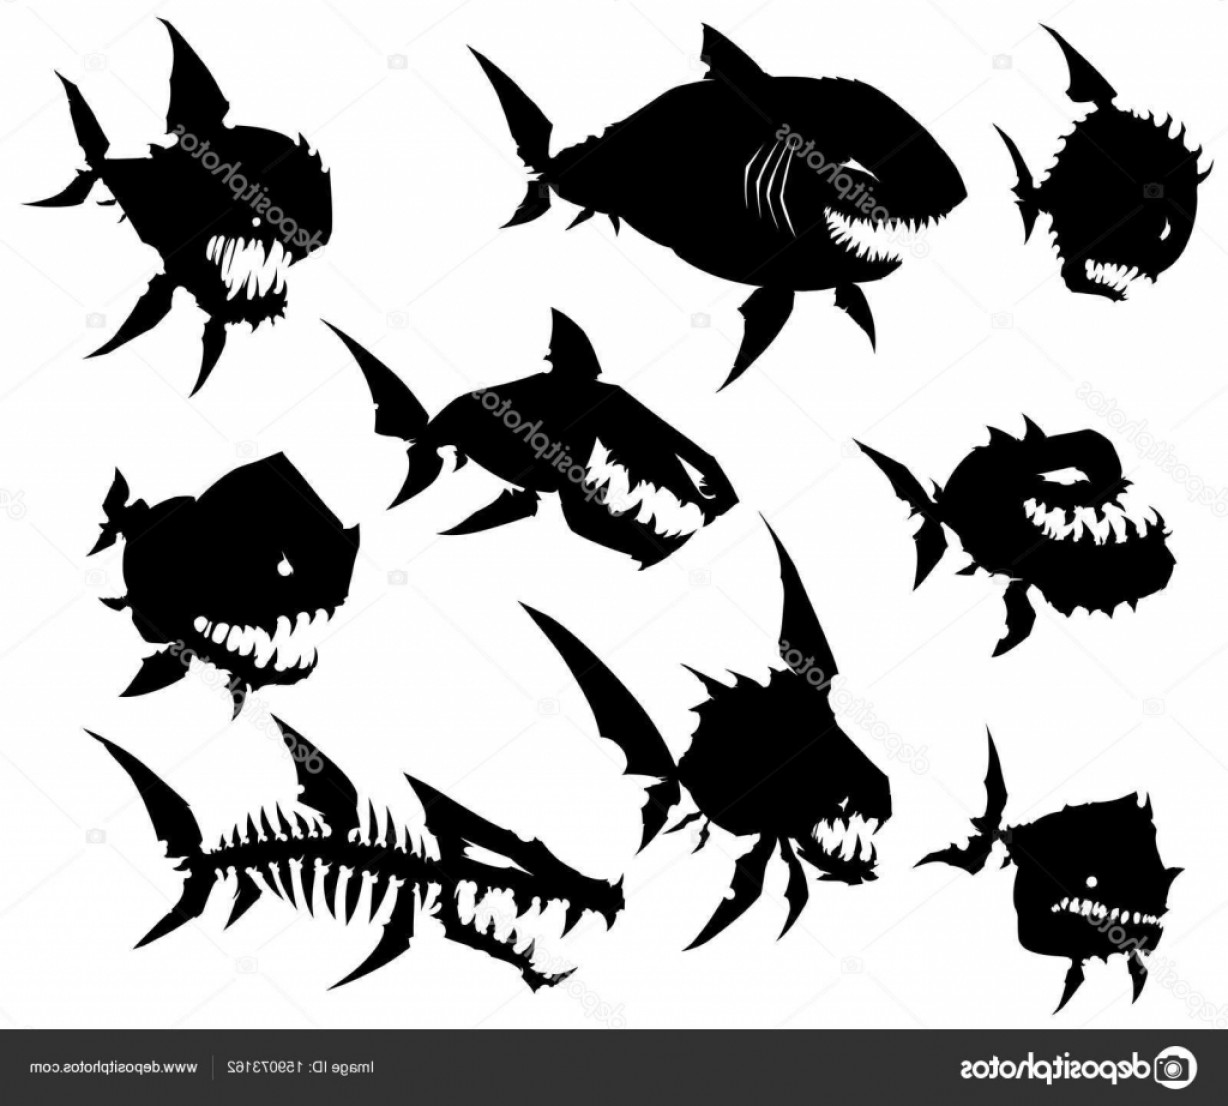 Fish Vector Graphic: Stock Illustration Black Graphic Silhouette Cool Monster